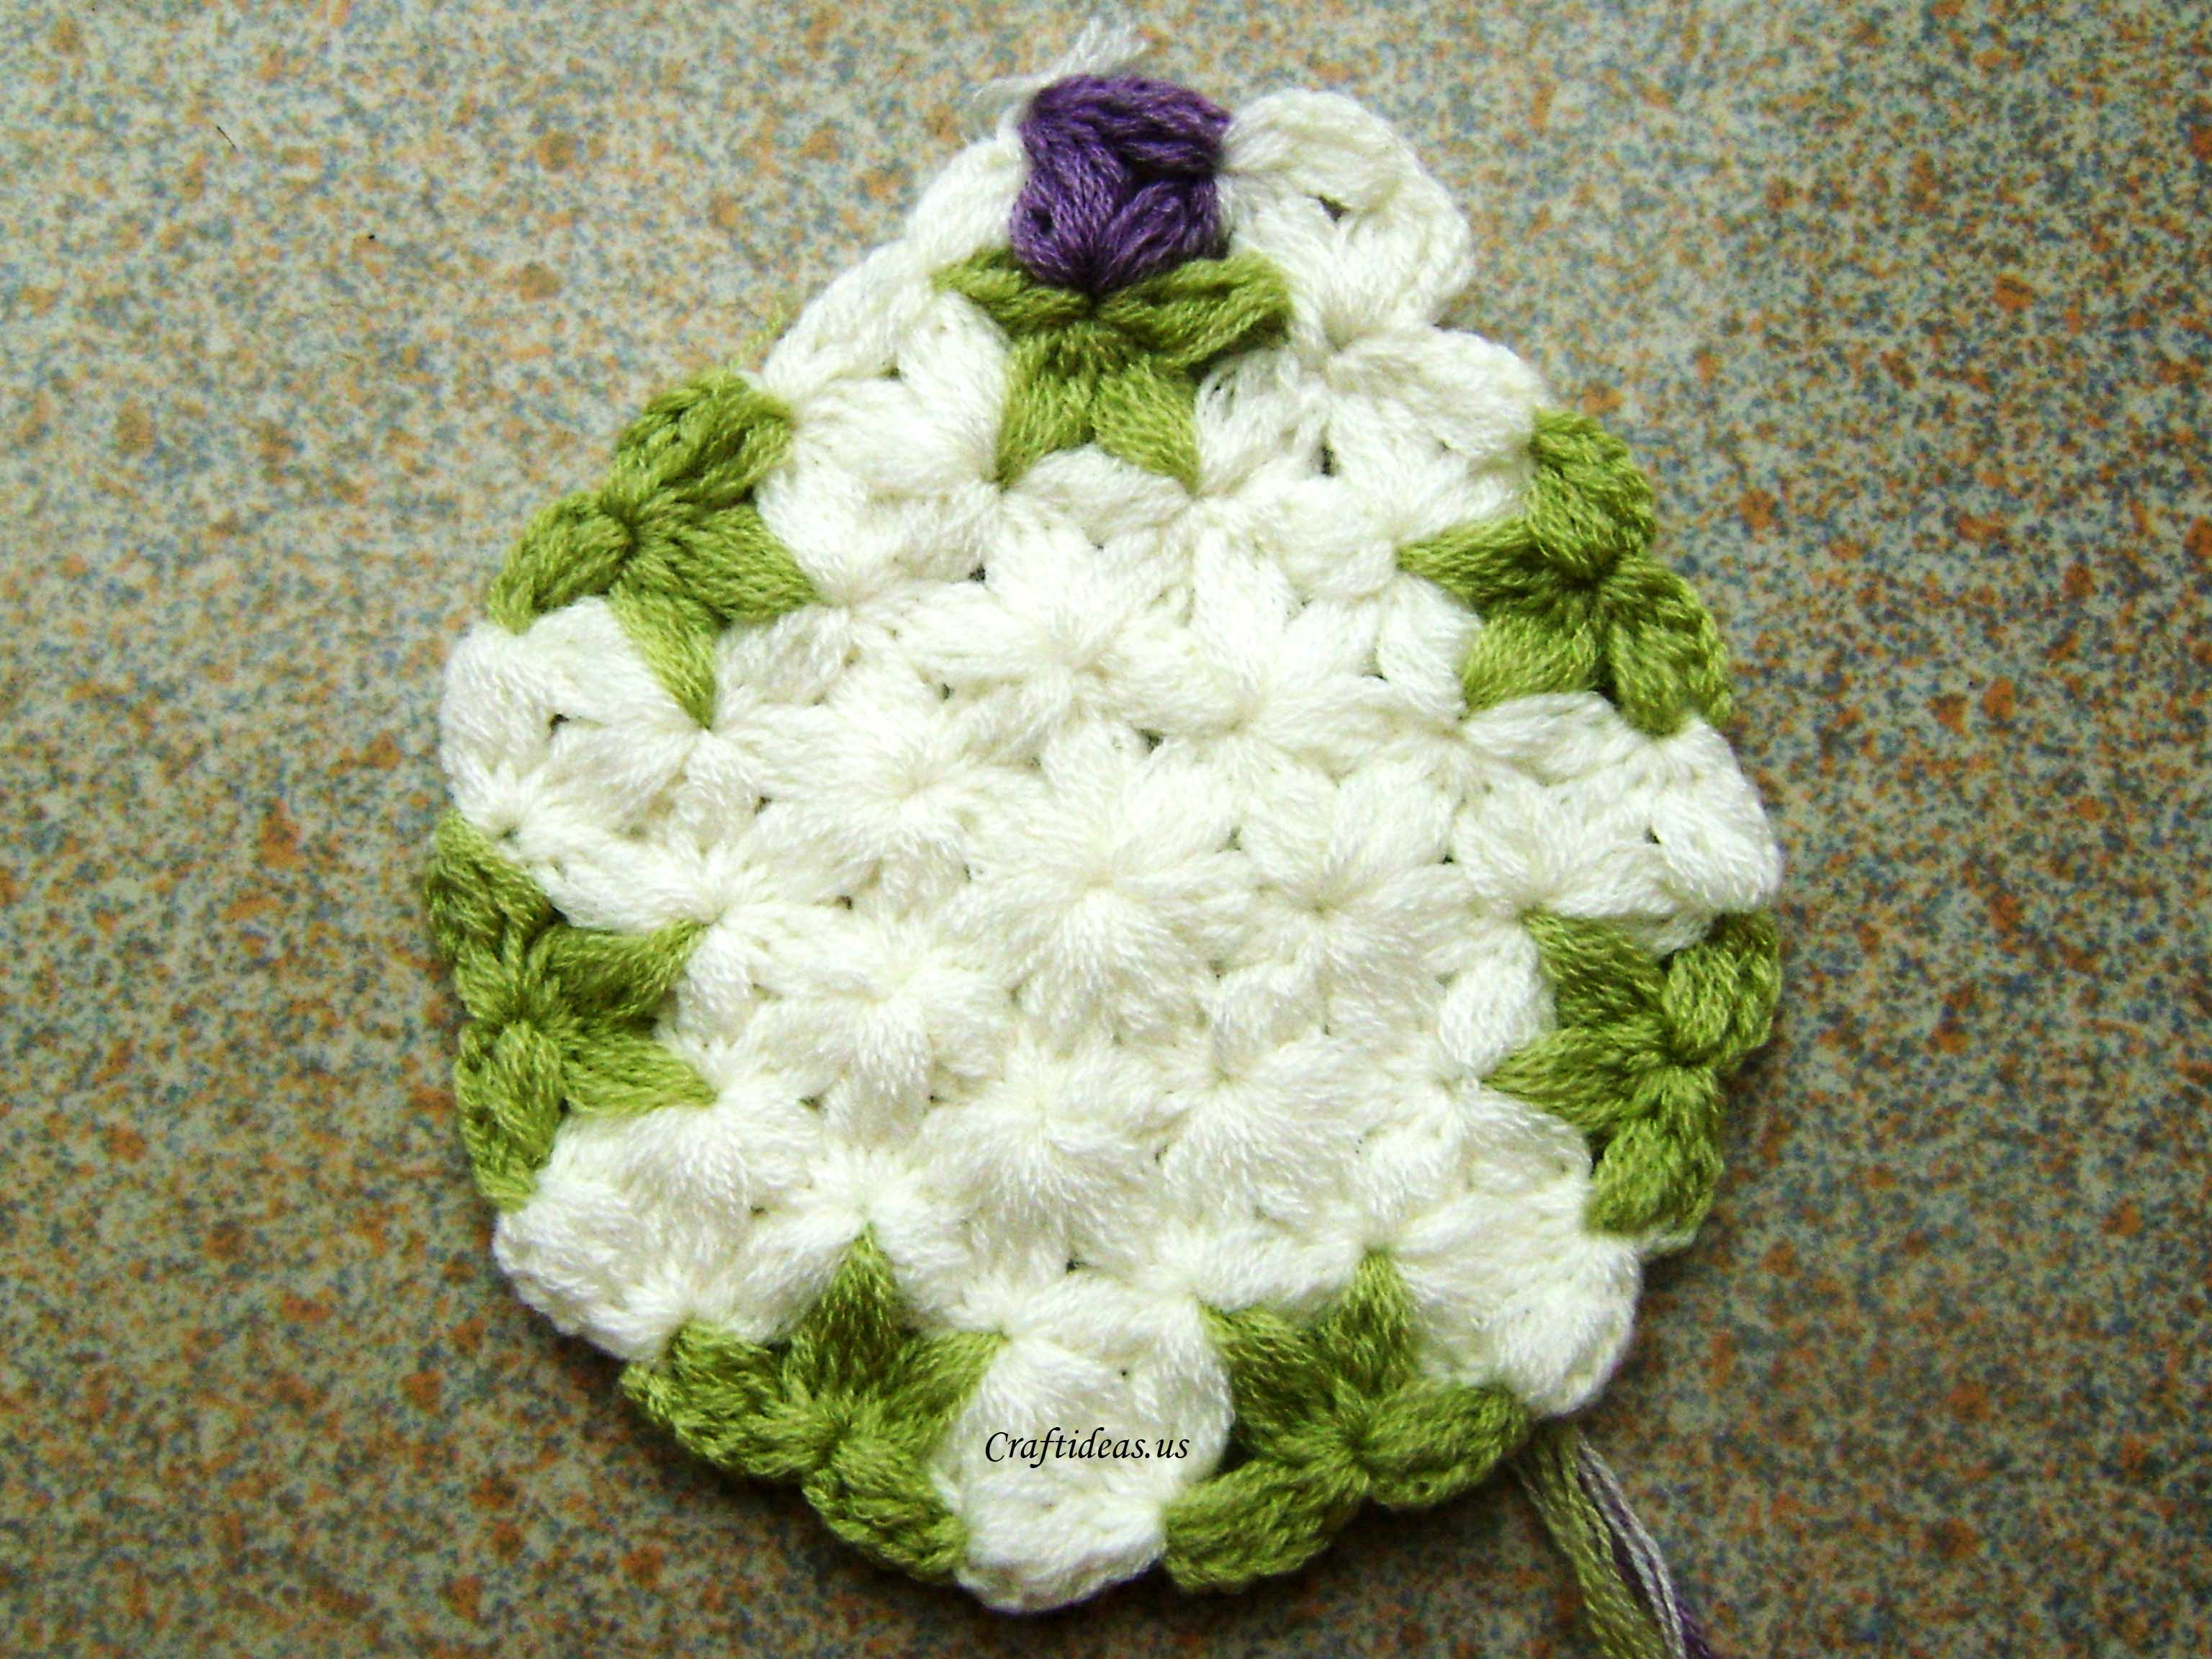 Crochet Jasmine Stitch In The Round : Round 6 and round 7: crochet repeat round 4 and round 5.